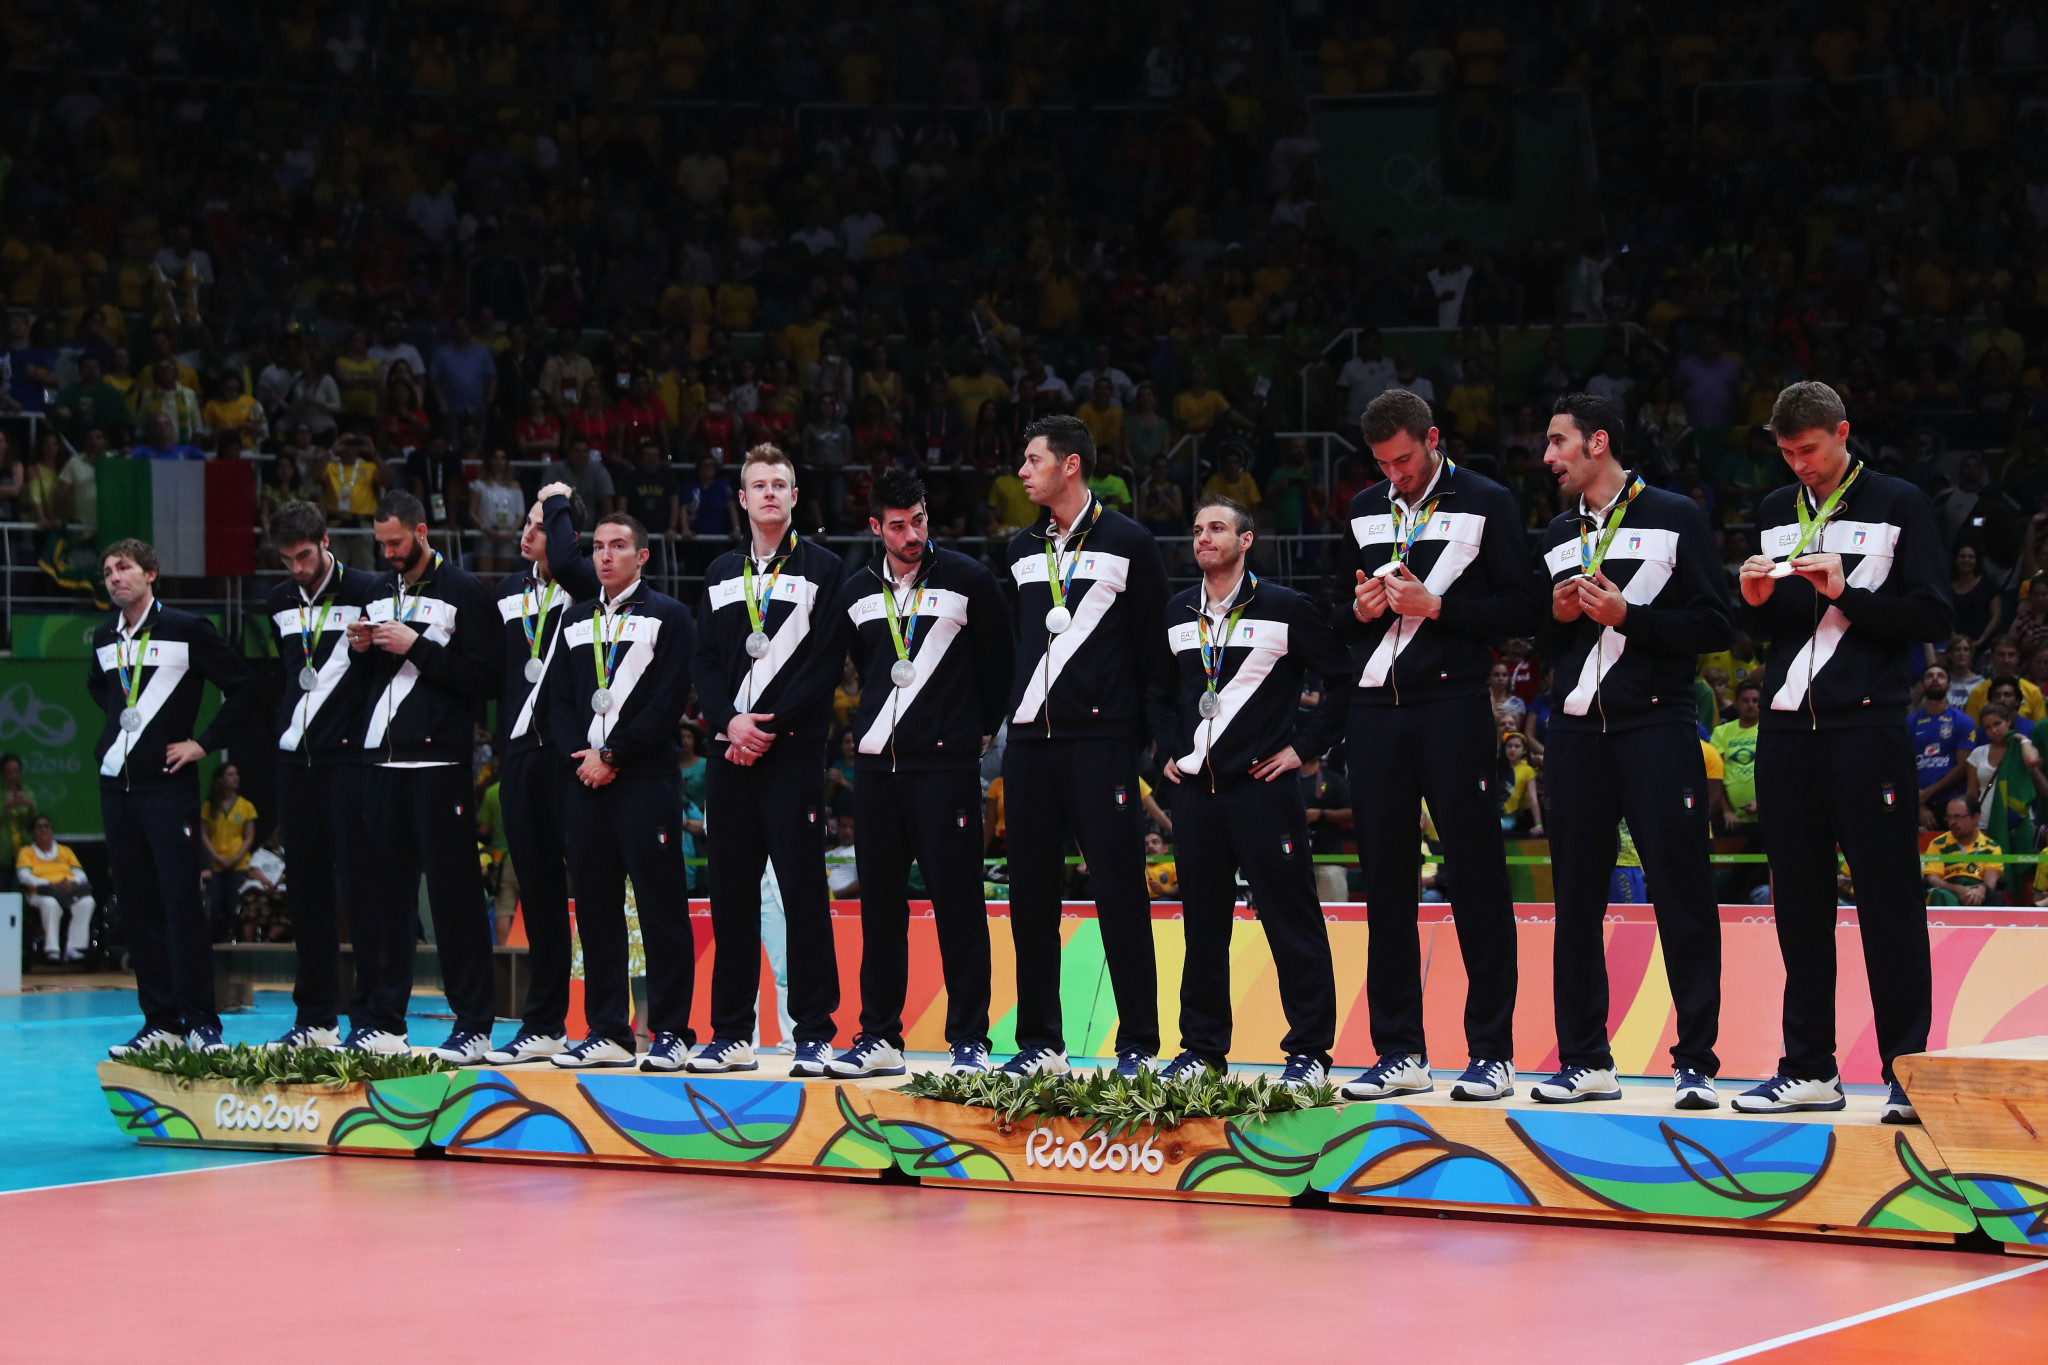 Italy have been handed an FIVB wildcard place after their Rio 2016 silver medal ©Getty Images